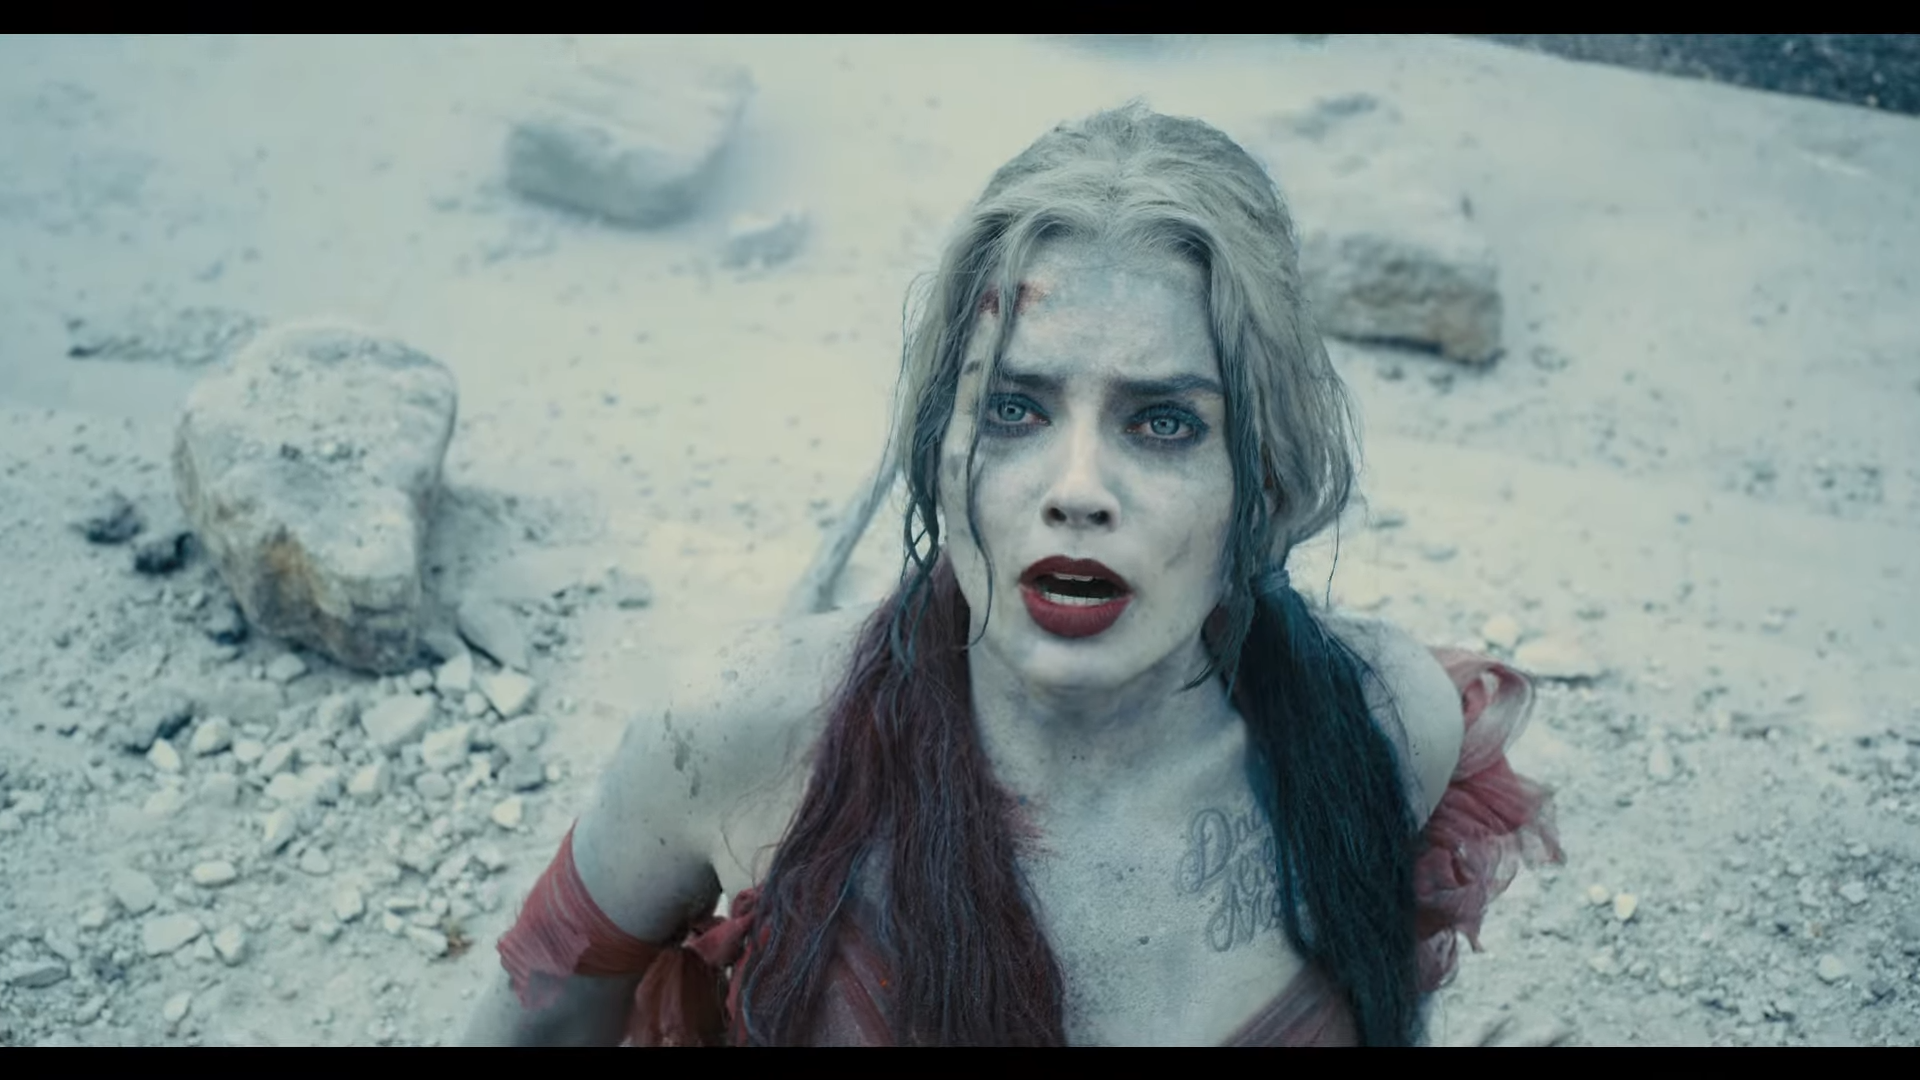 THE-SUICIDE-SQUAD-Rebellion-Trailer-1-54-screenshot-56